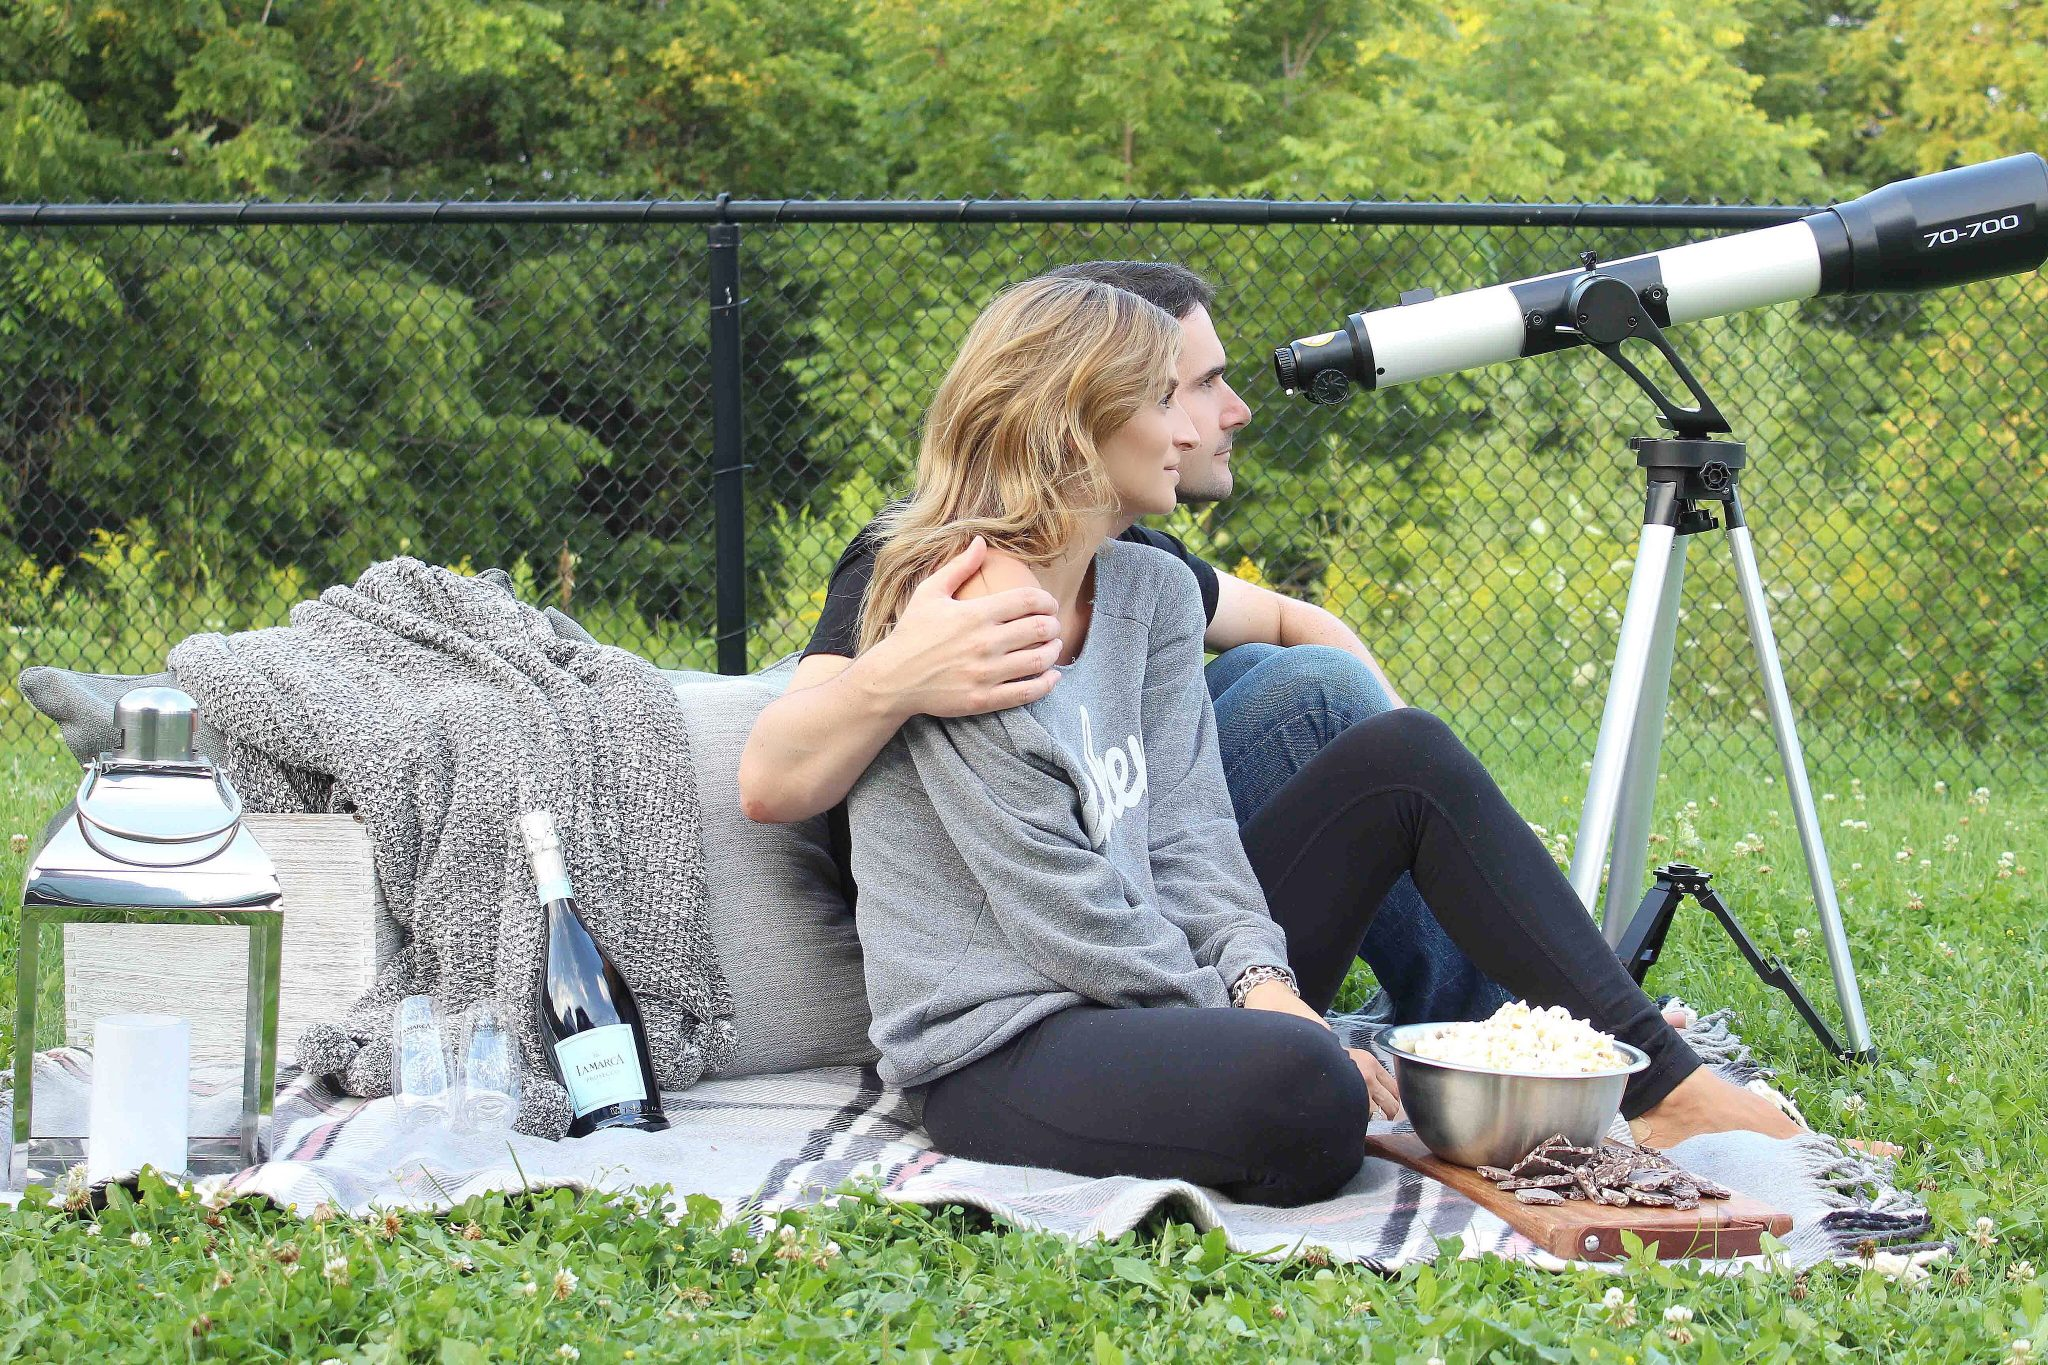 La Marca Prosecco date night star gazing